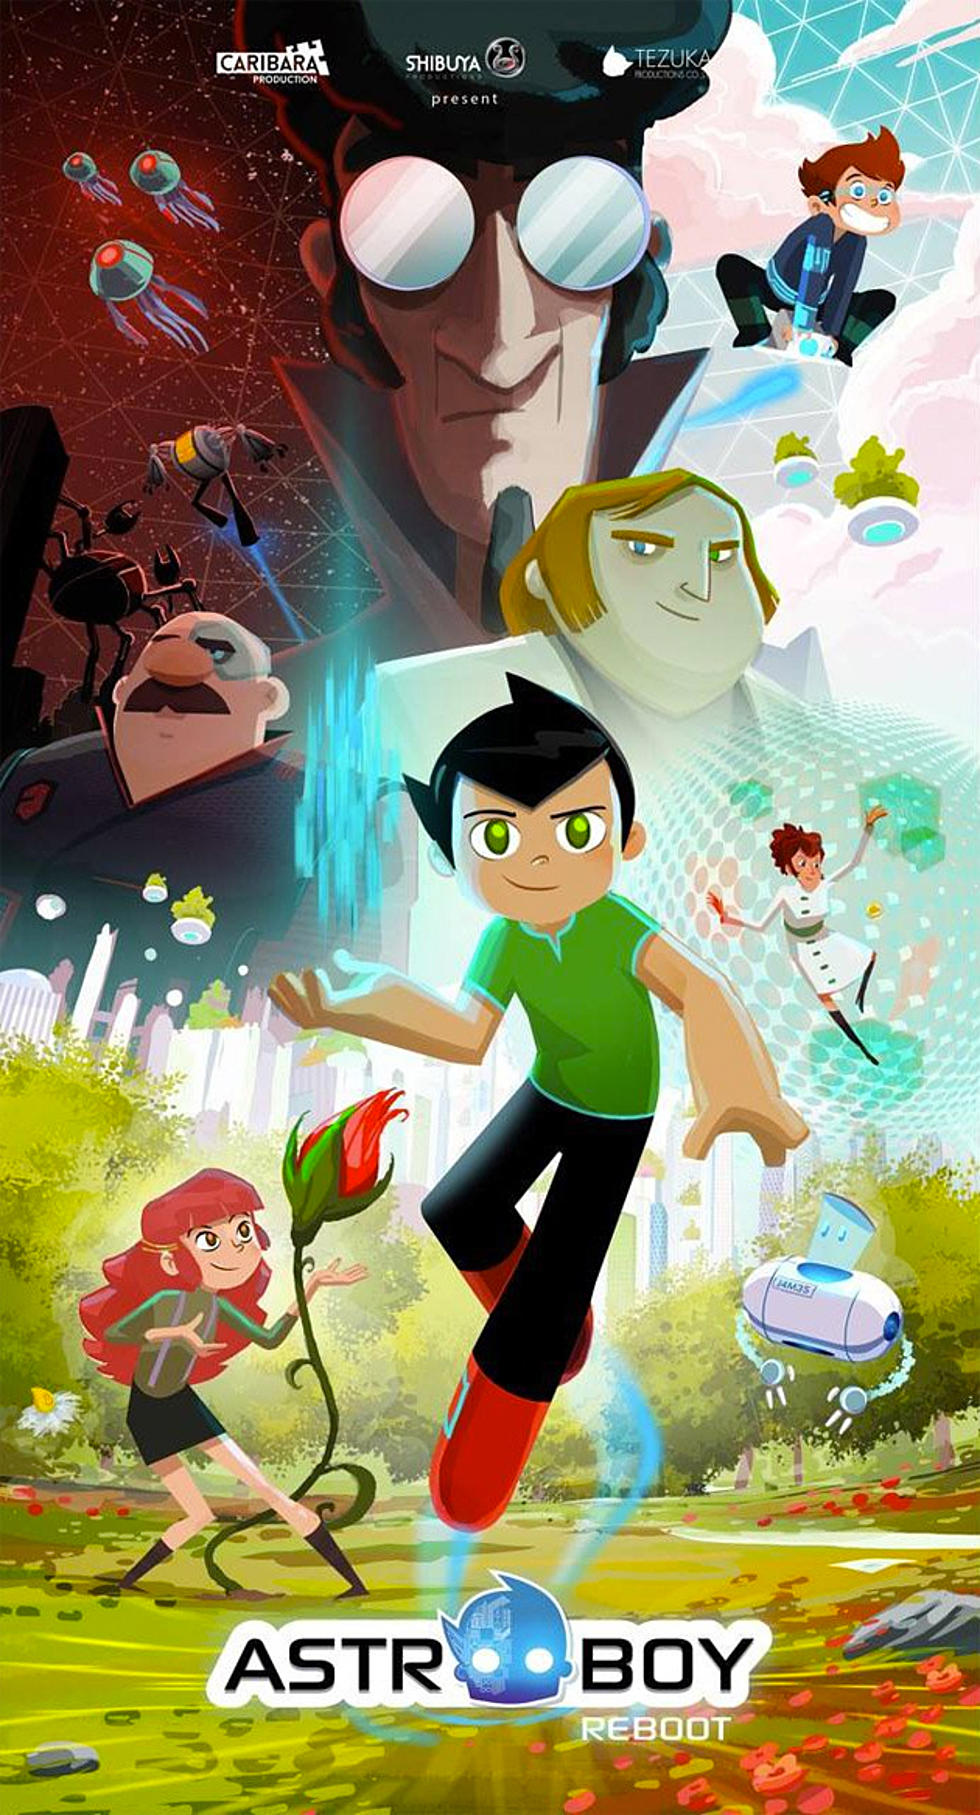 Astro boy reboot poster reveals characters designs and the strange polo shirts of the future